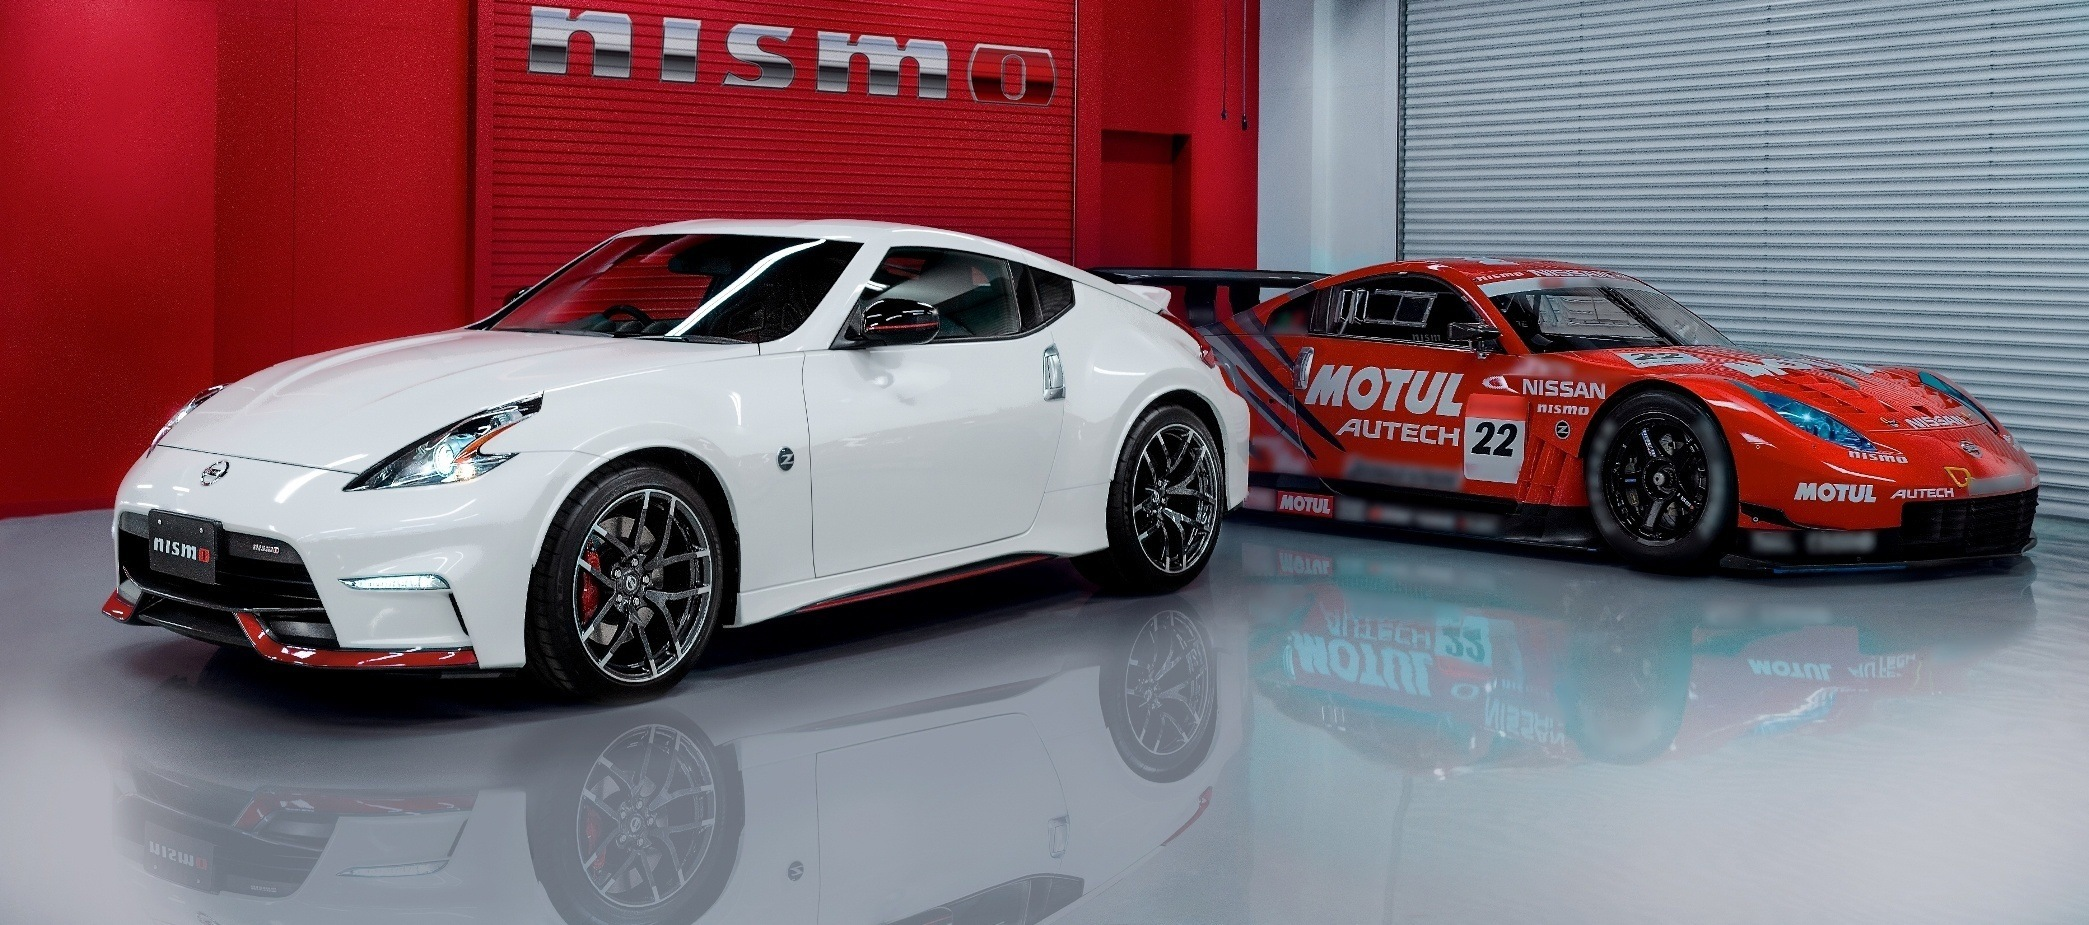 2015 nissan 370z nismo facelift. Black Bedroom Furniture Sets. Home Design Ideas